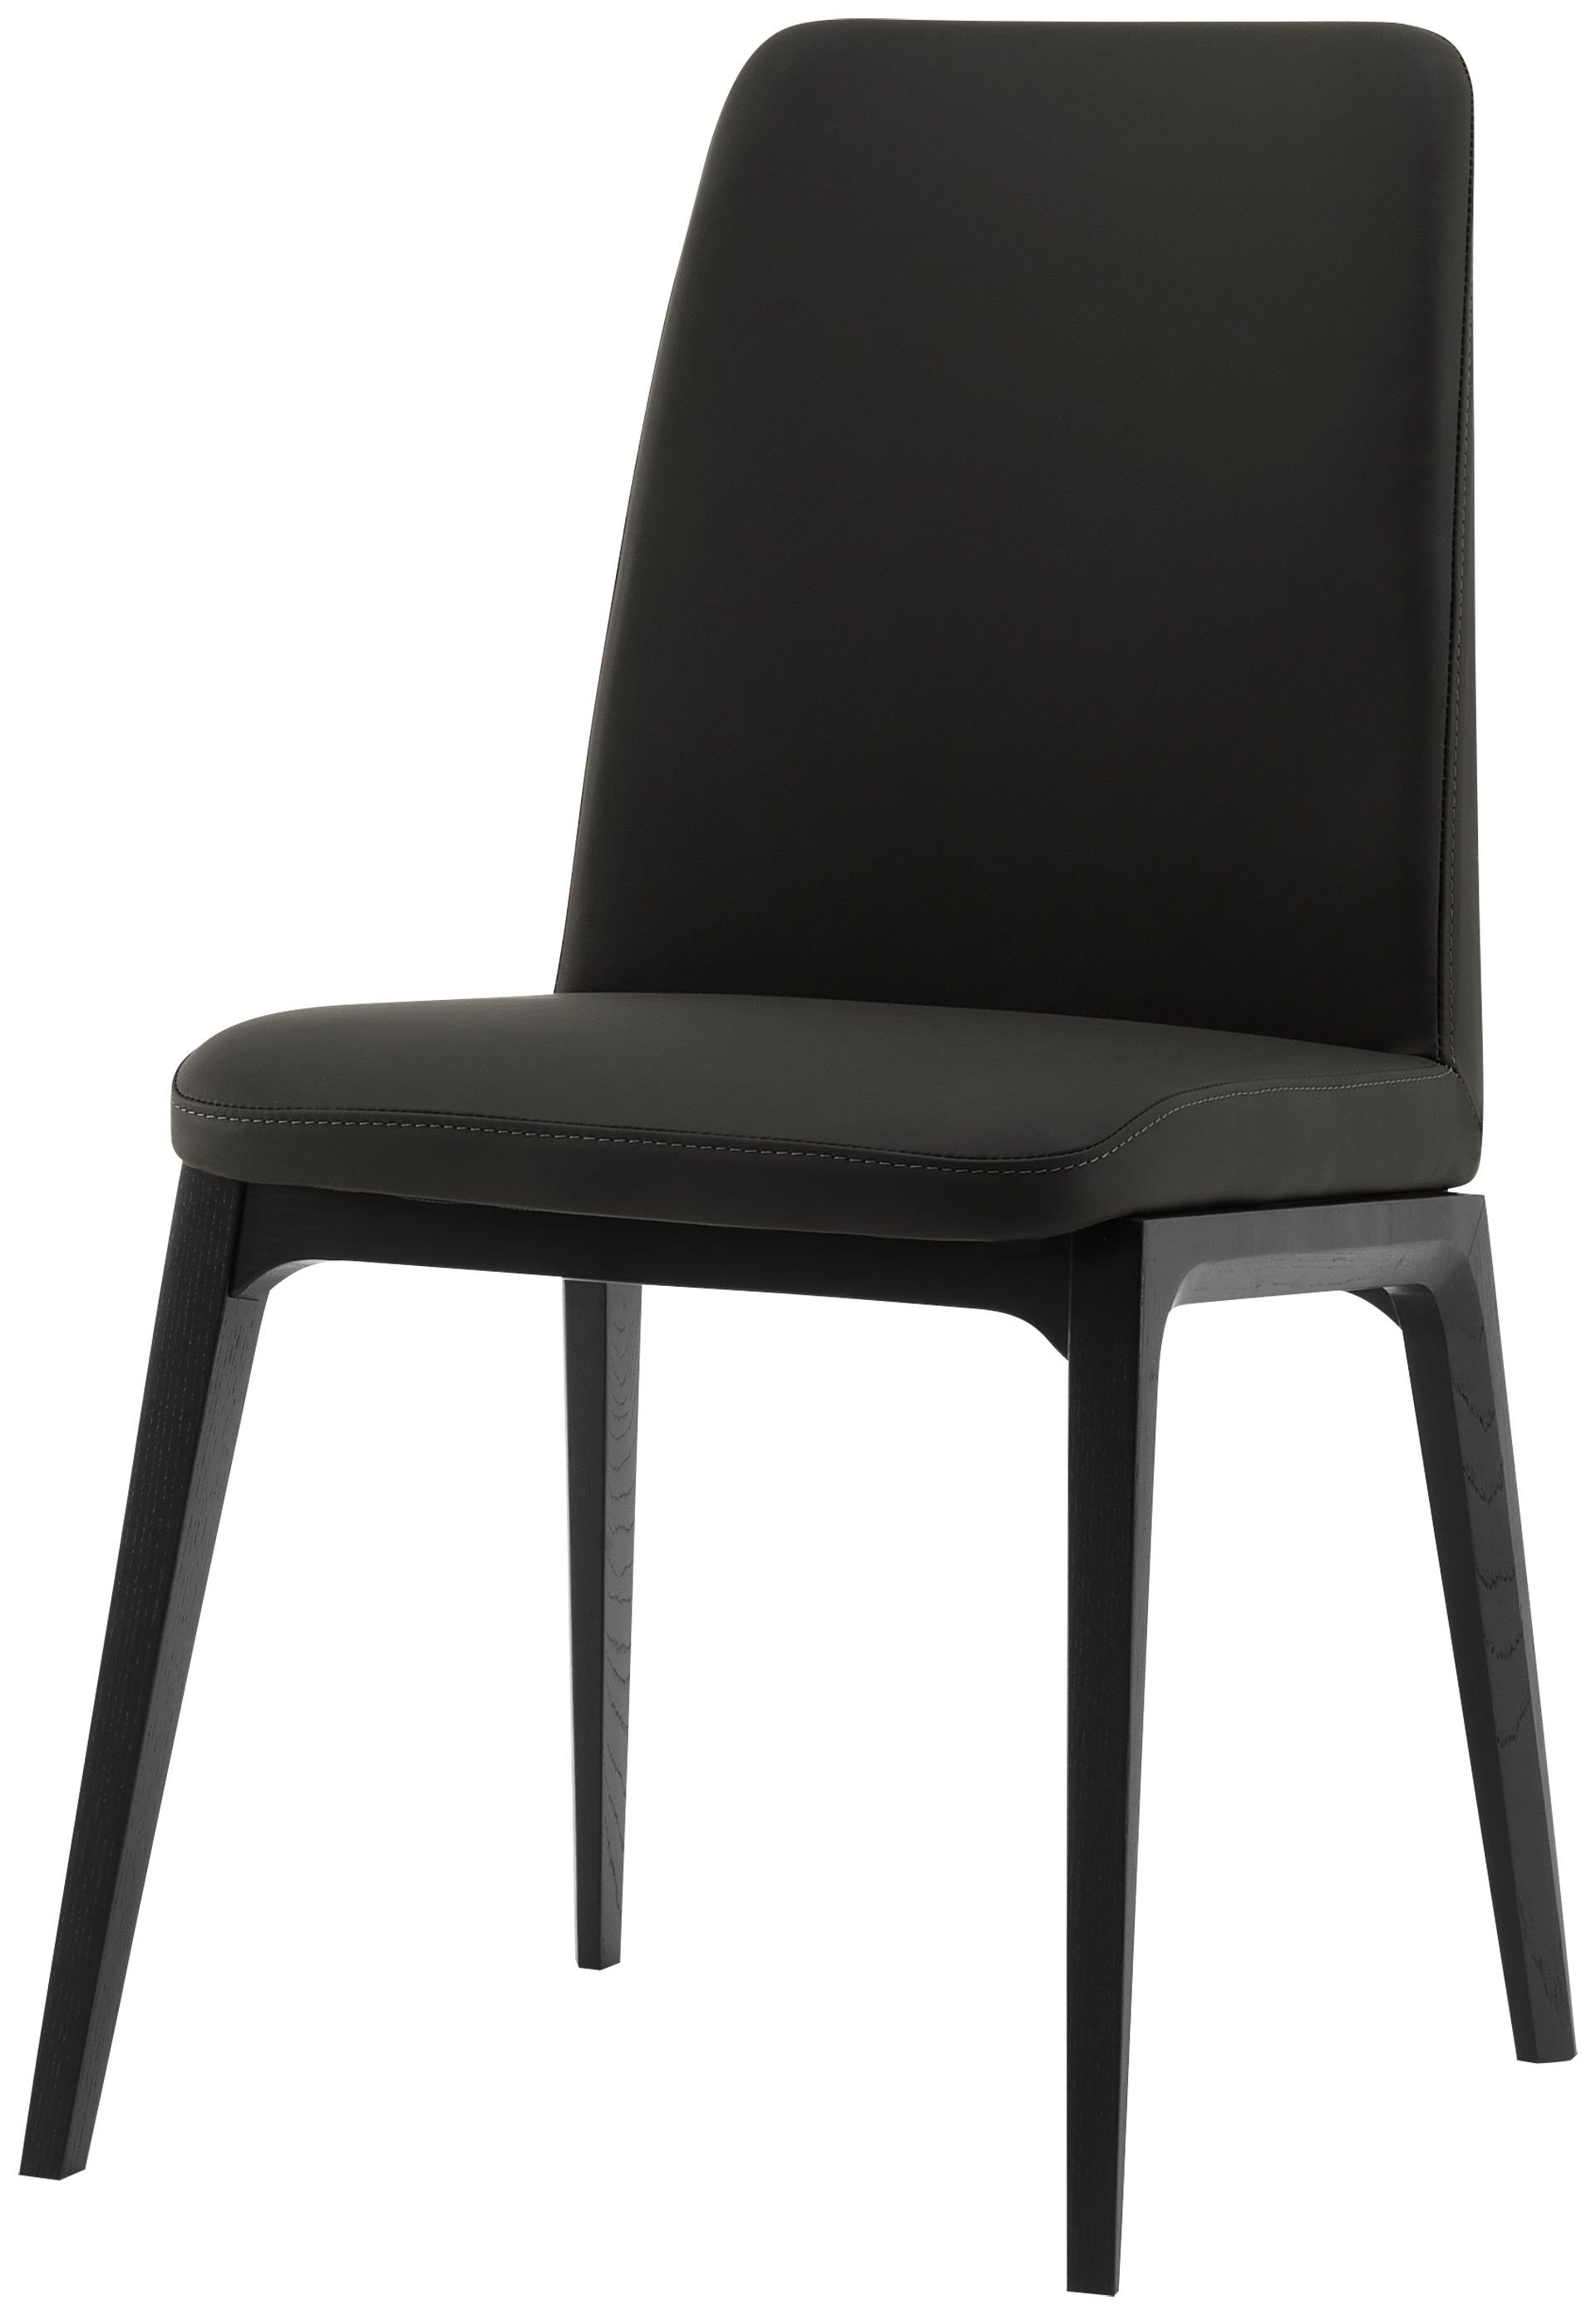 Lausanne Chair - Modern Dining Chairs, Designer Dining ...